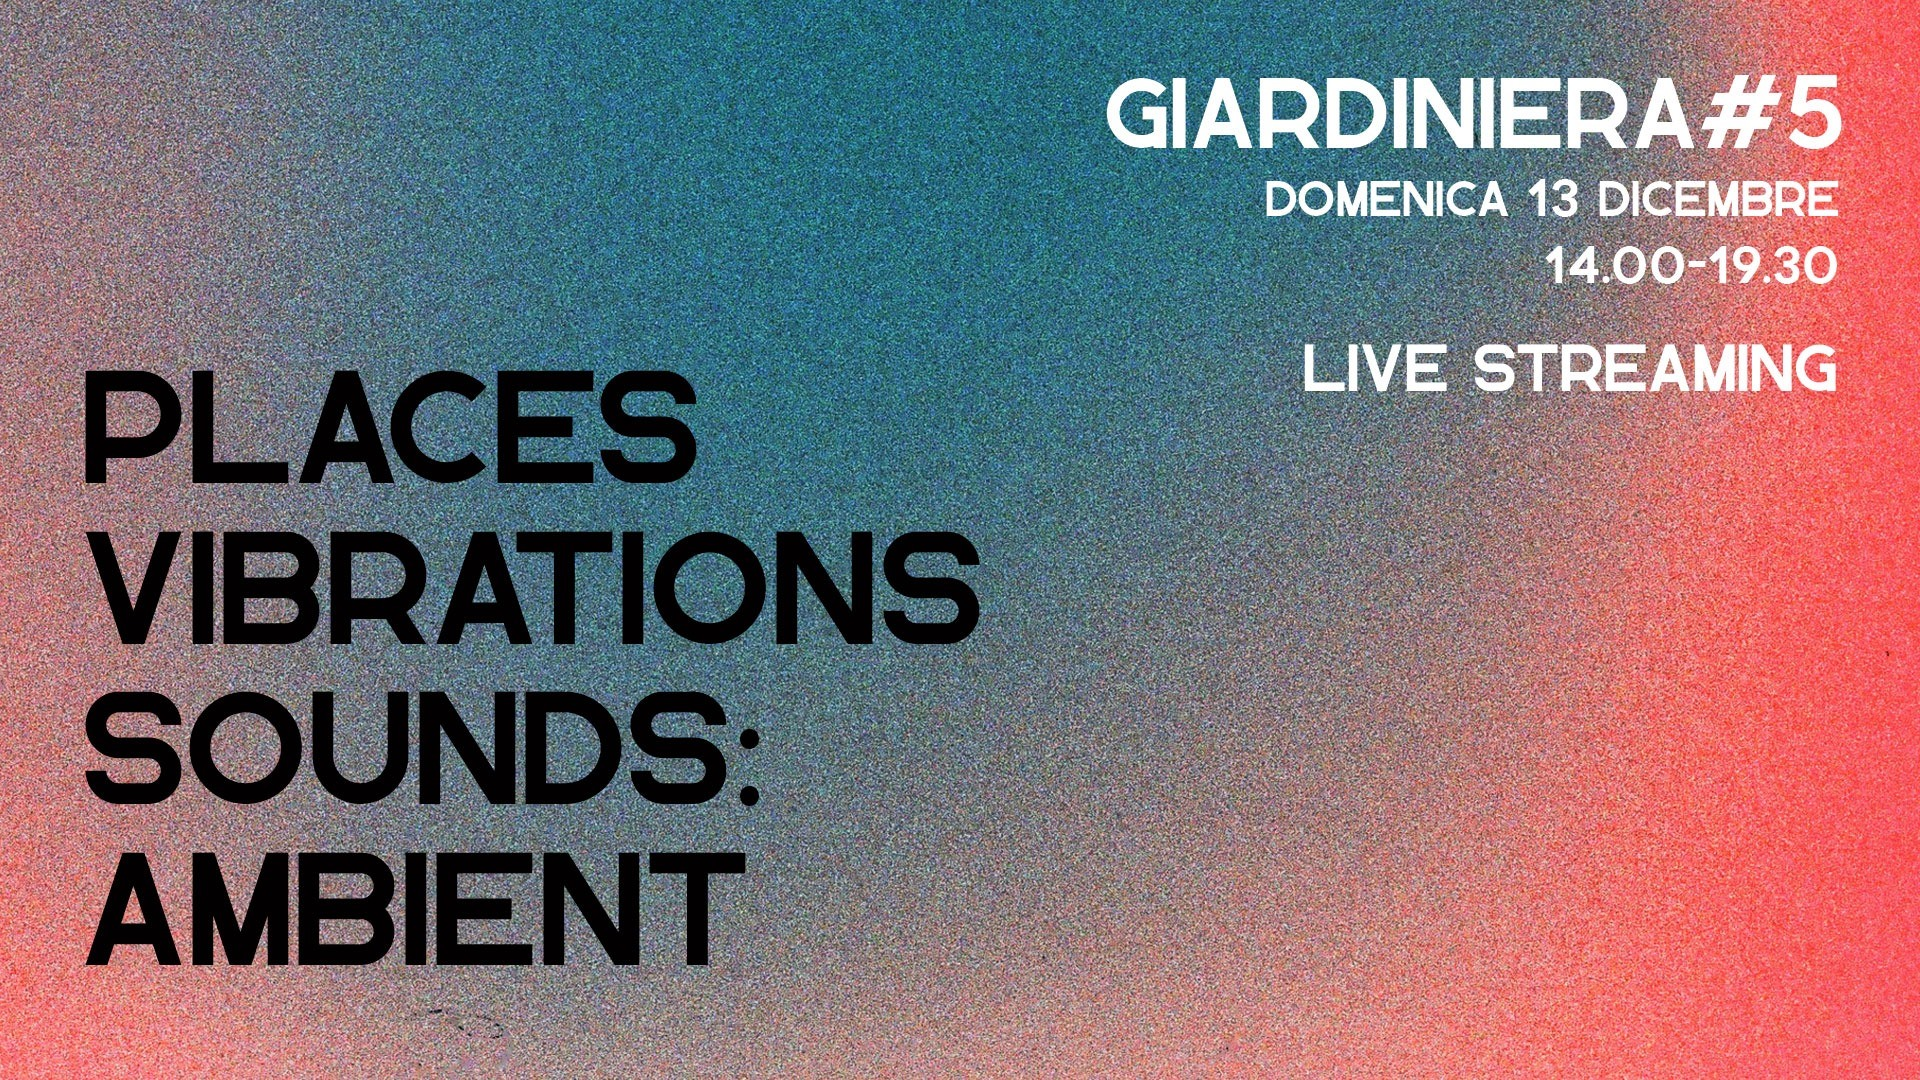 Giardiniera #5 places vibrations sound ambient